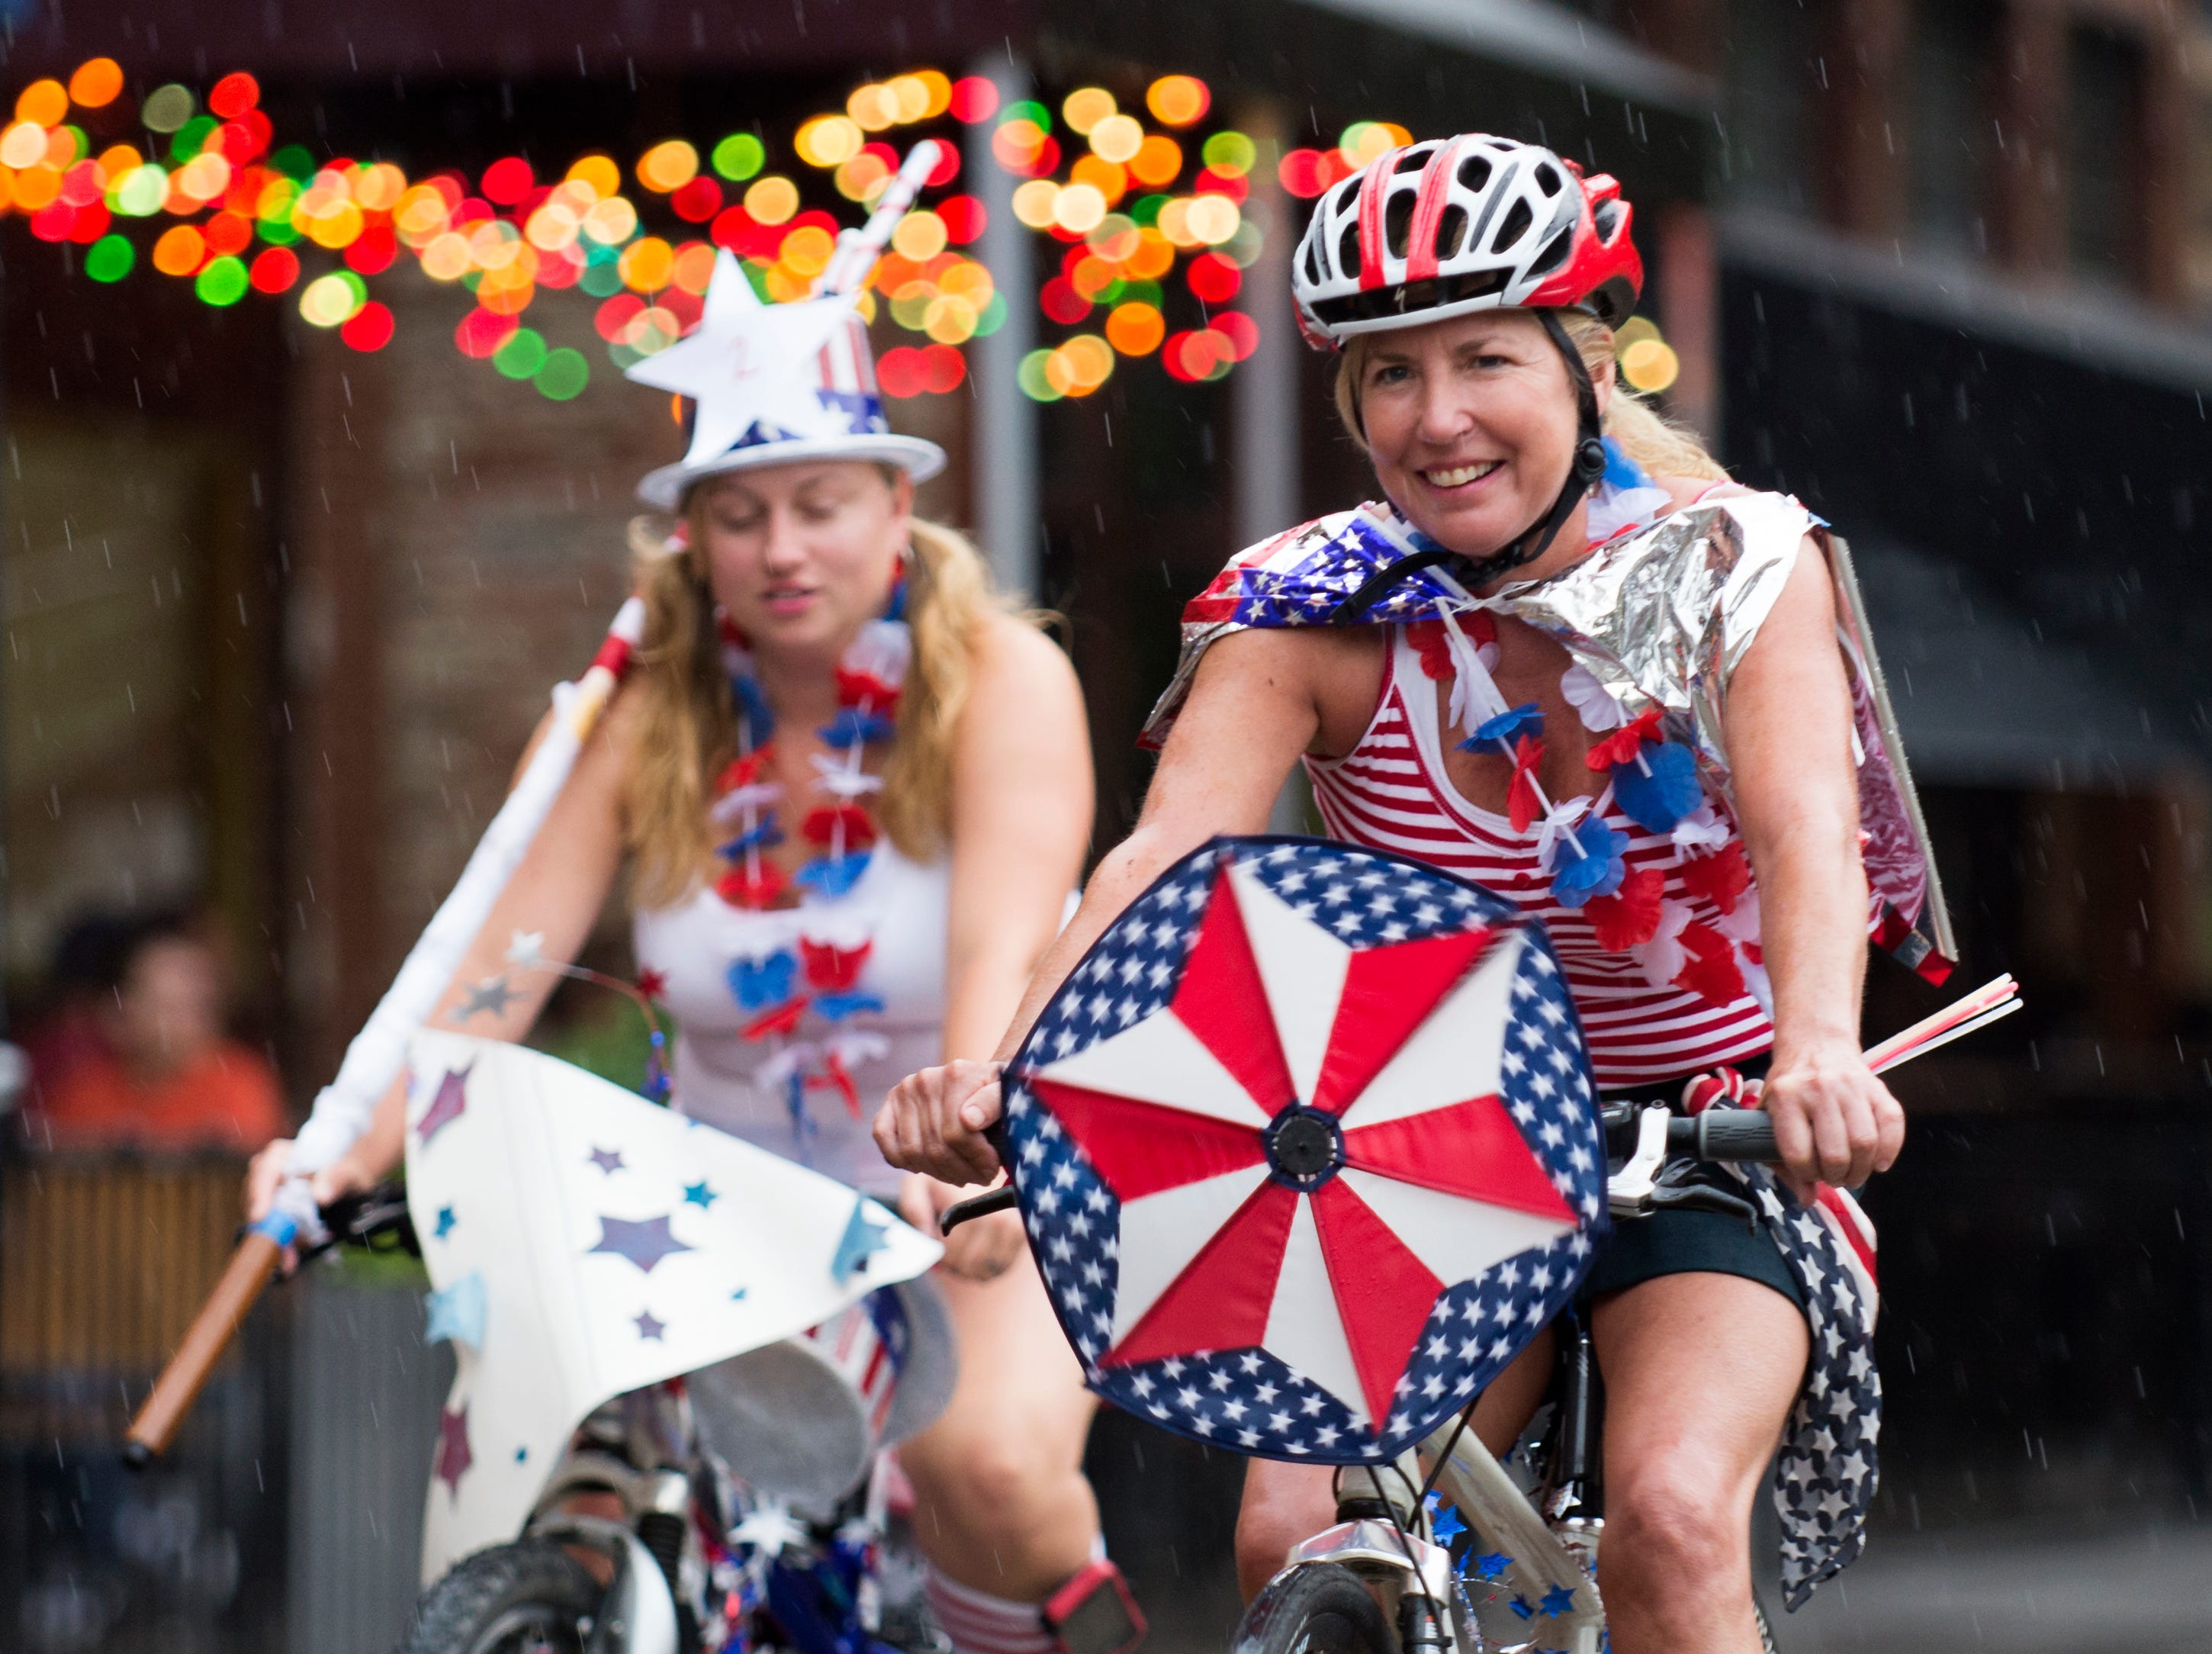 Cecilia Petersen rides with a whirlygig during a Patriotic Bike Parade Thursday, June 26, 2014, at Market Square. Sponsored by the city's Office of Special Events, the rain-shorten parade attracted dozens of riders in red, white, and blue. (PAUL EFIRD/NEWS SENTINEL)